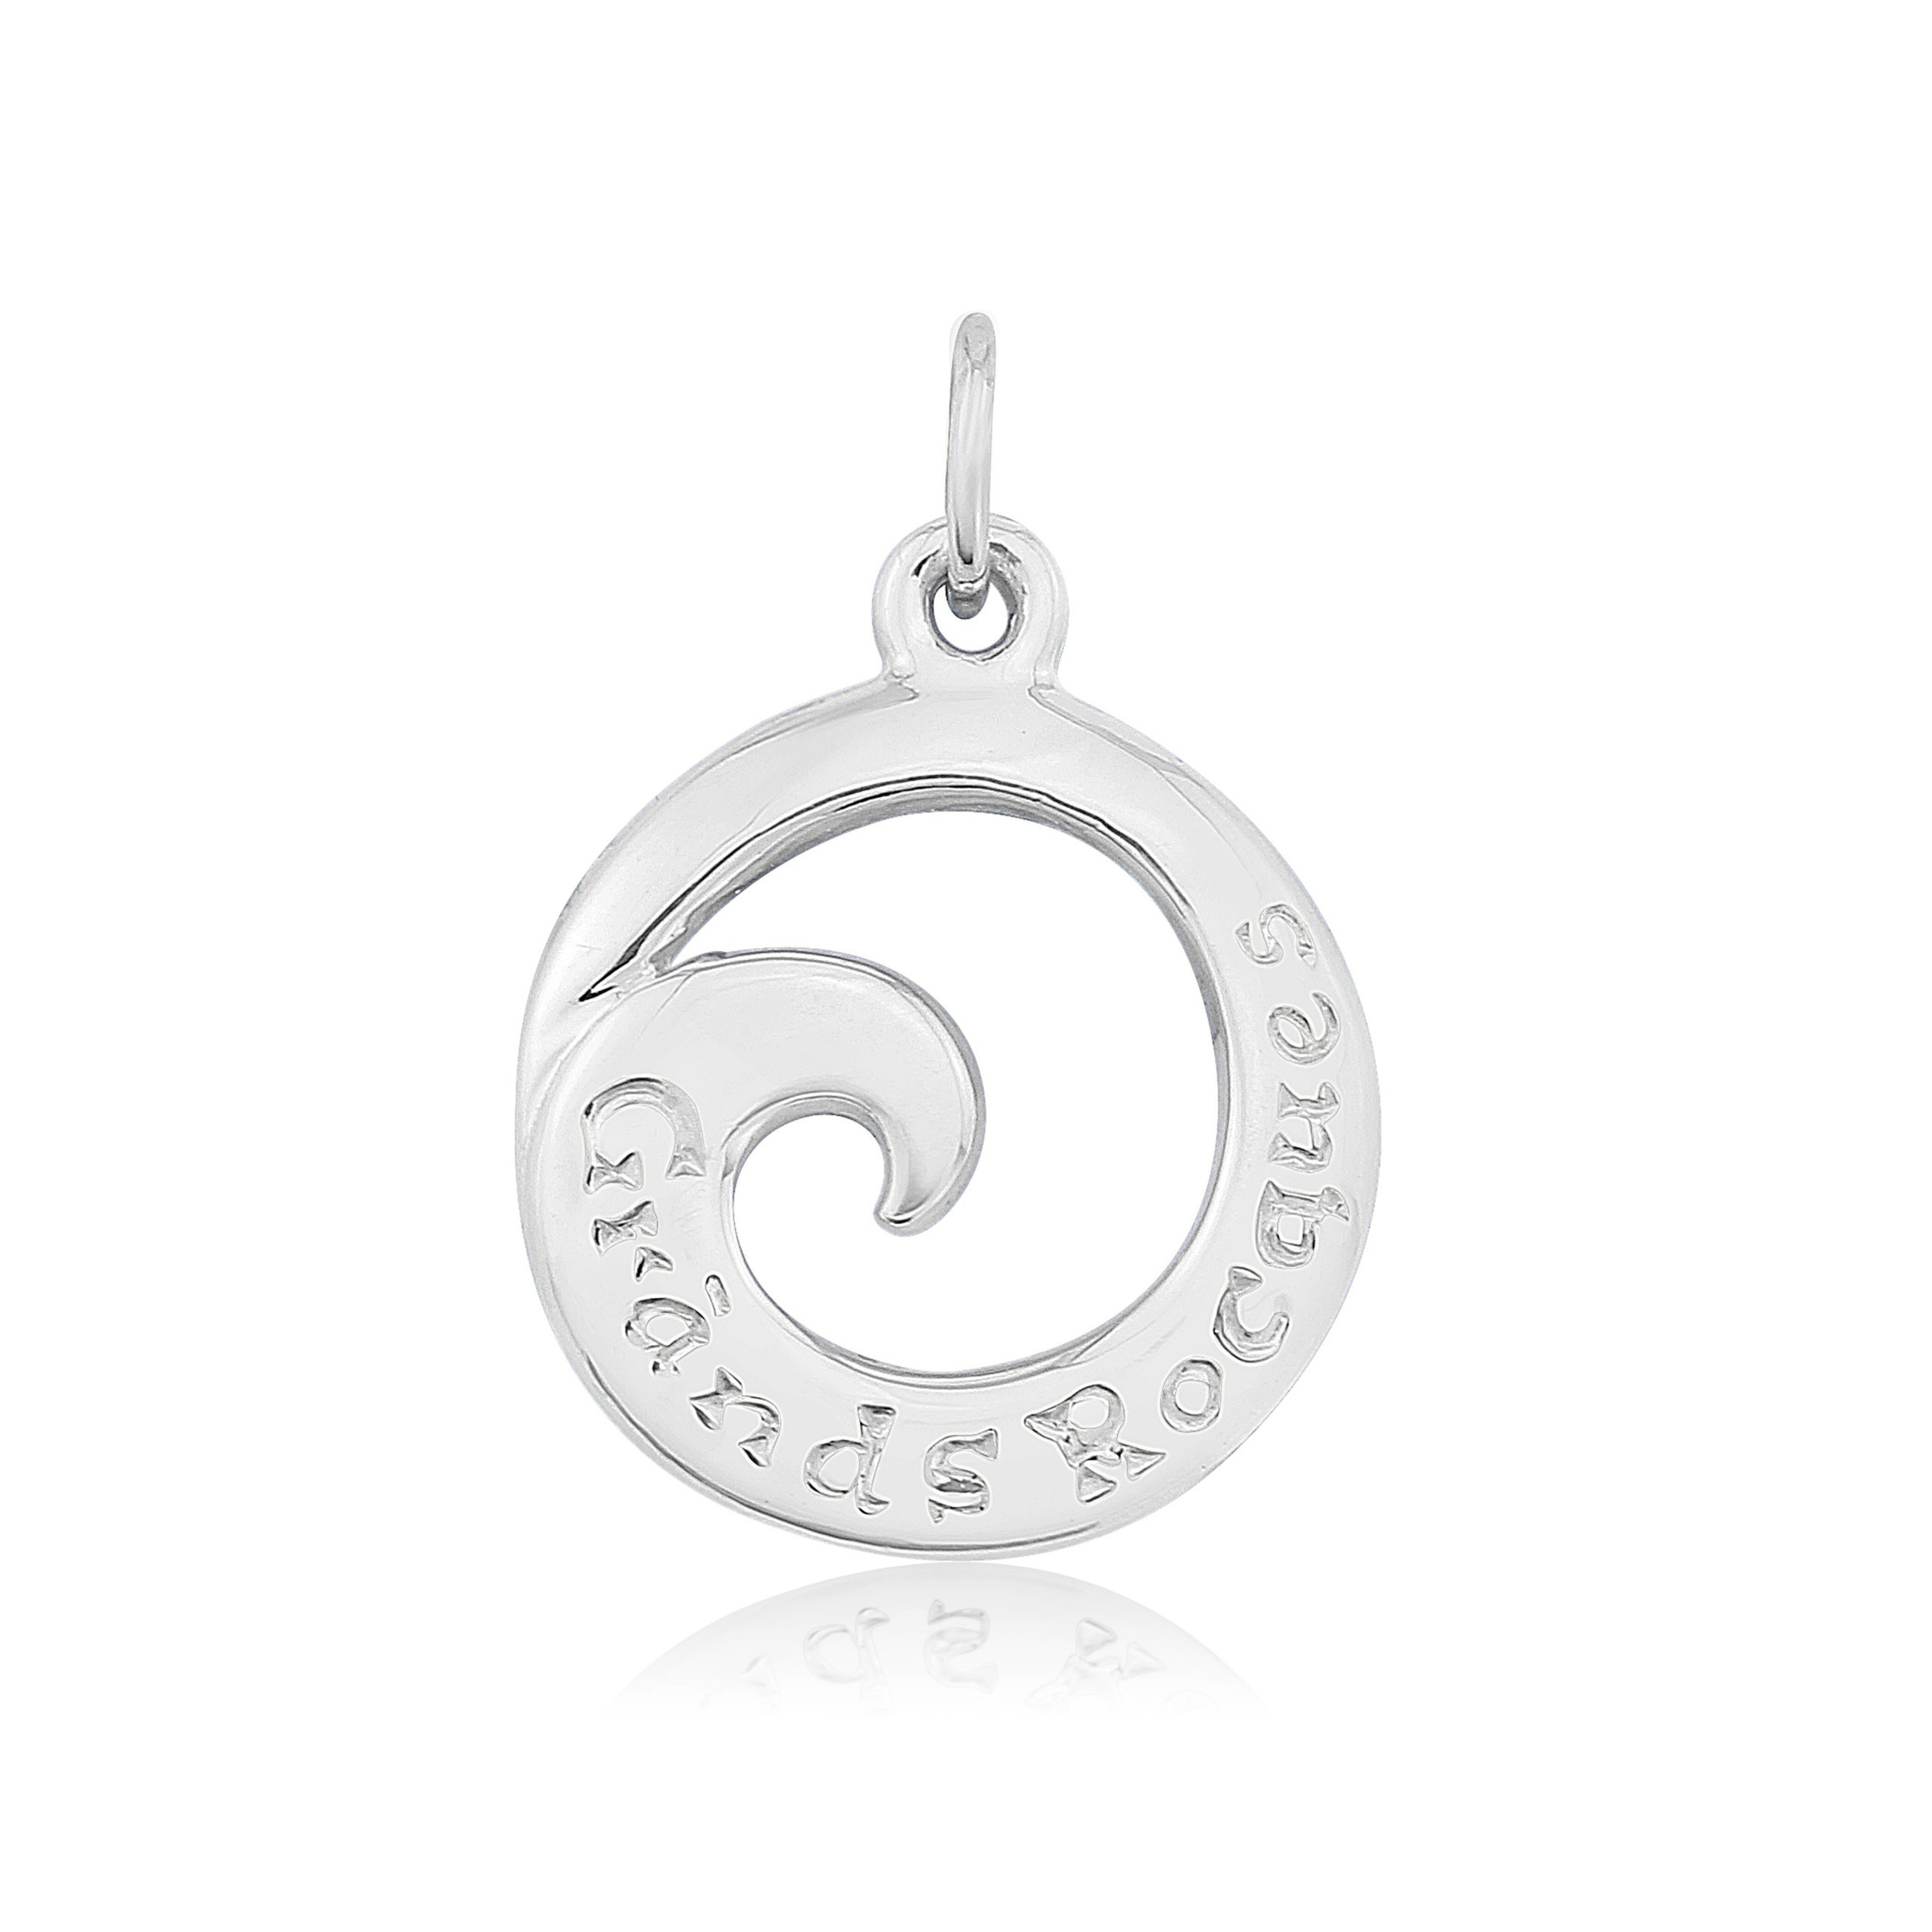 Grands Rocques Sterling Silver Charm / Pendant  (Beach / Bays)